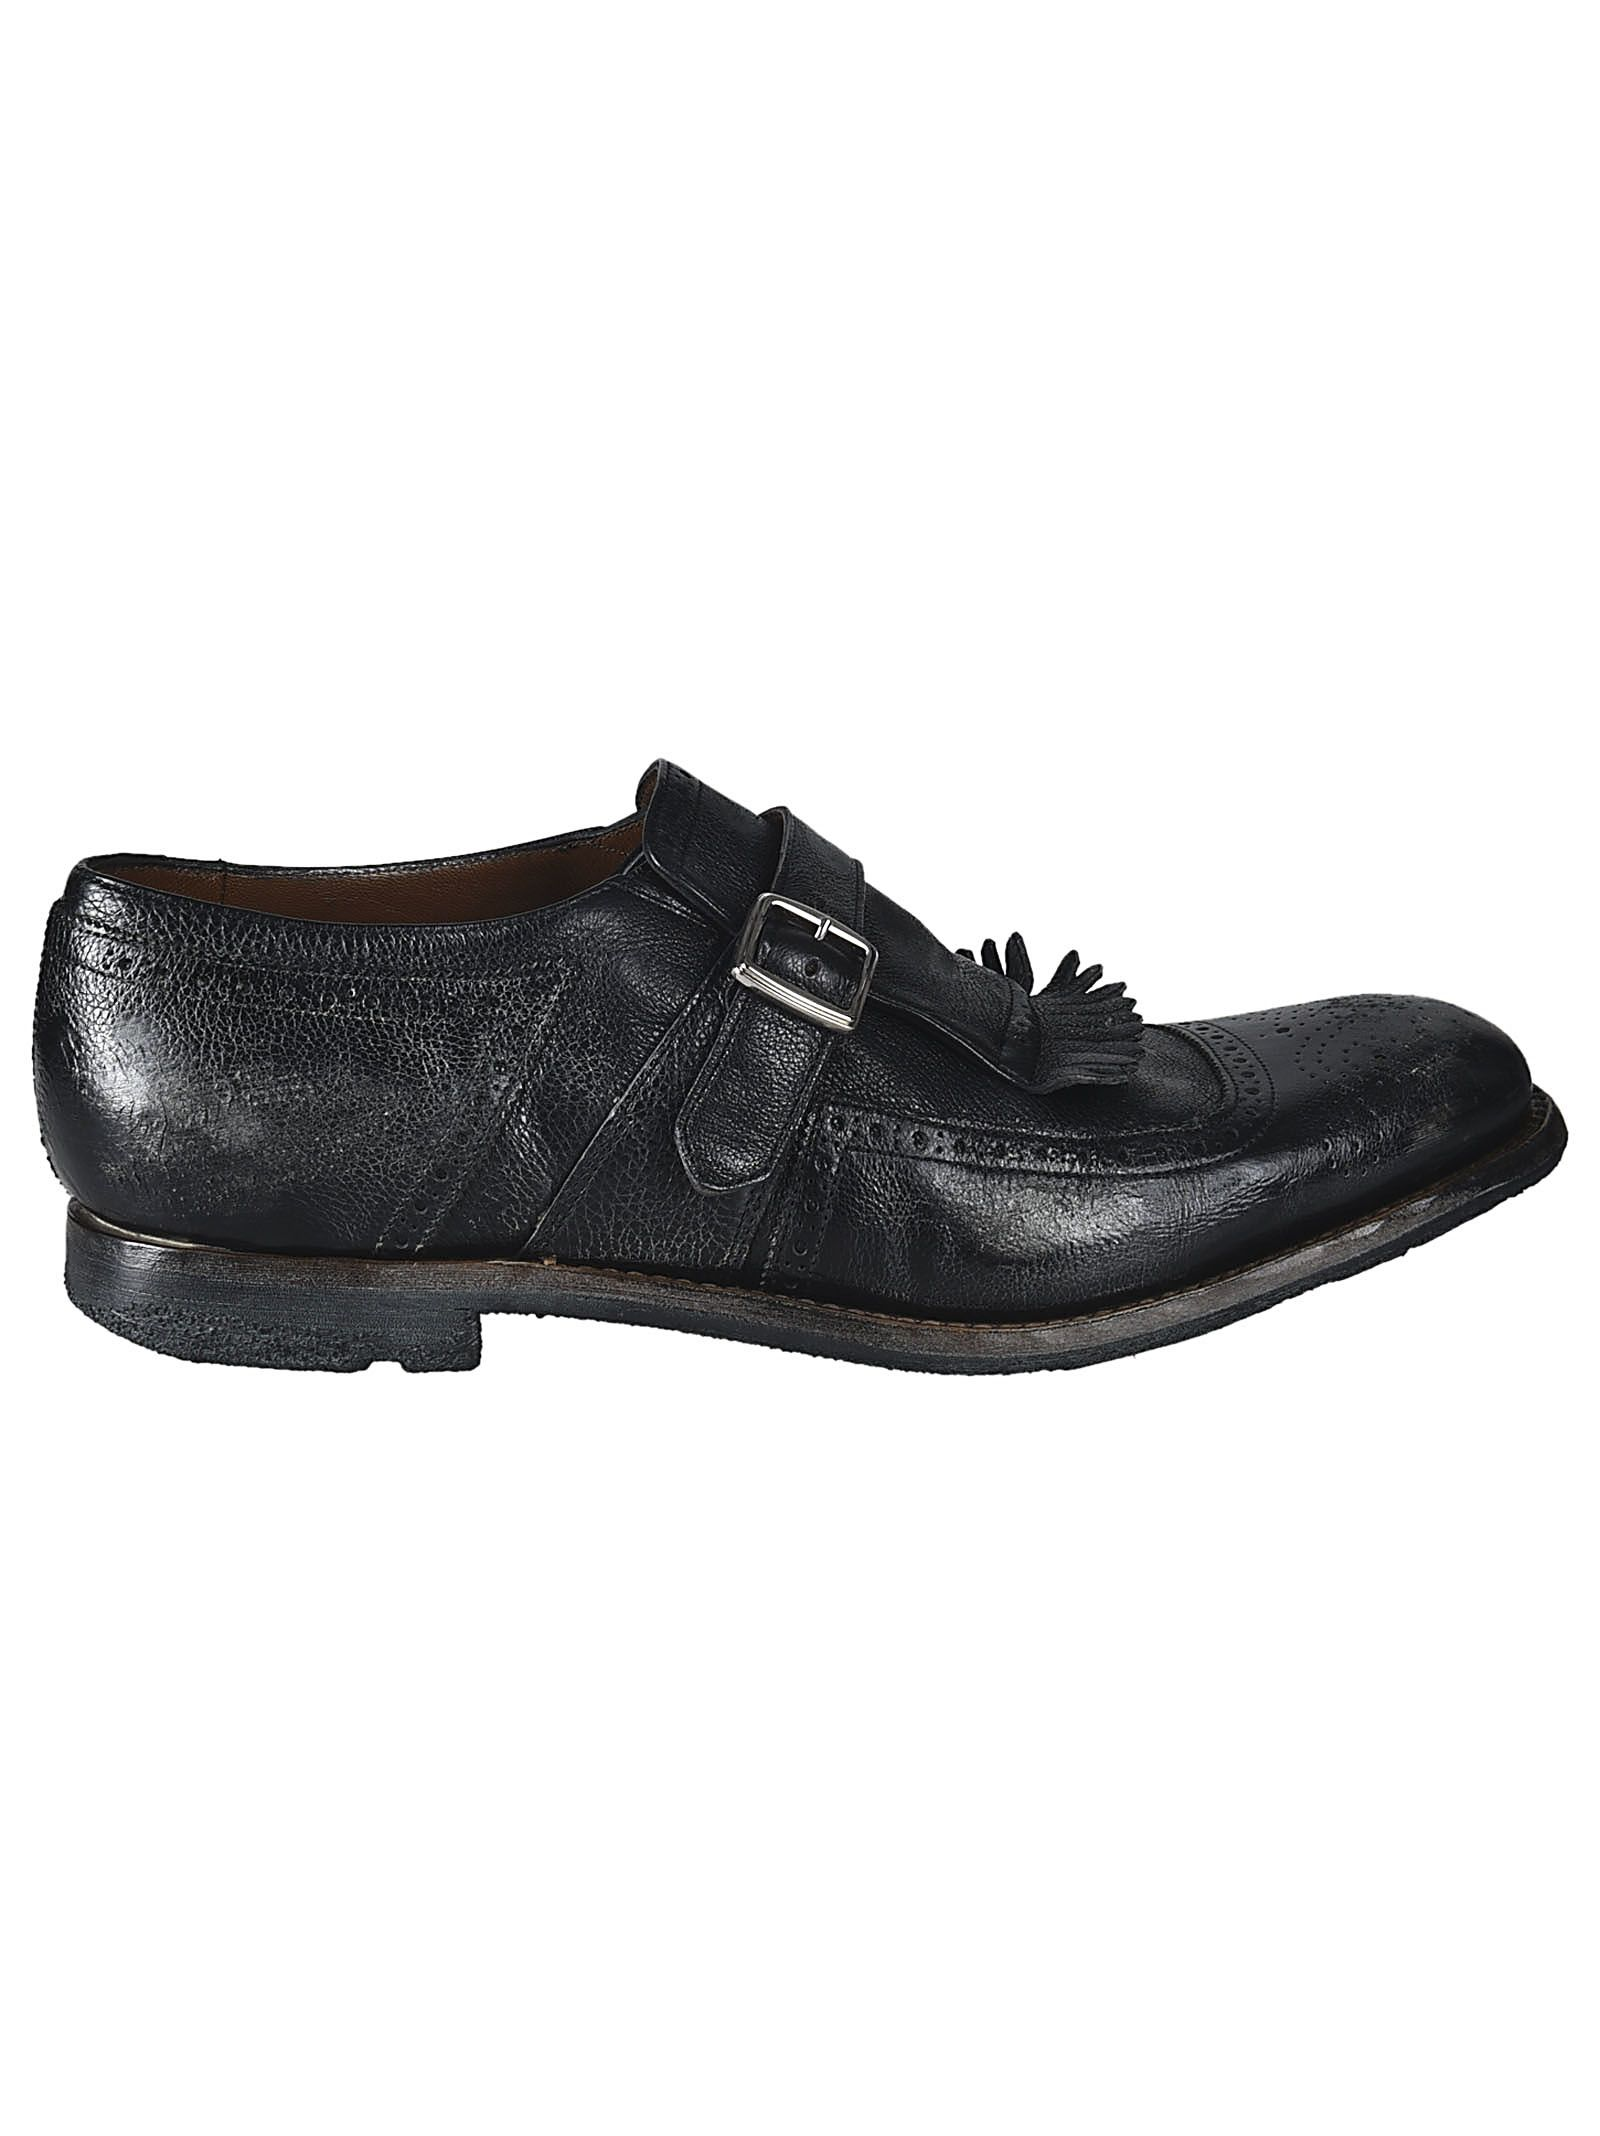 CHURCH'S FRINGED BUCKLE LOAFERS